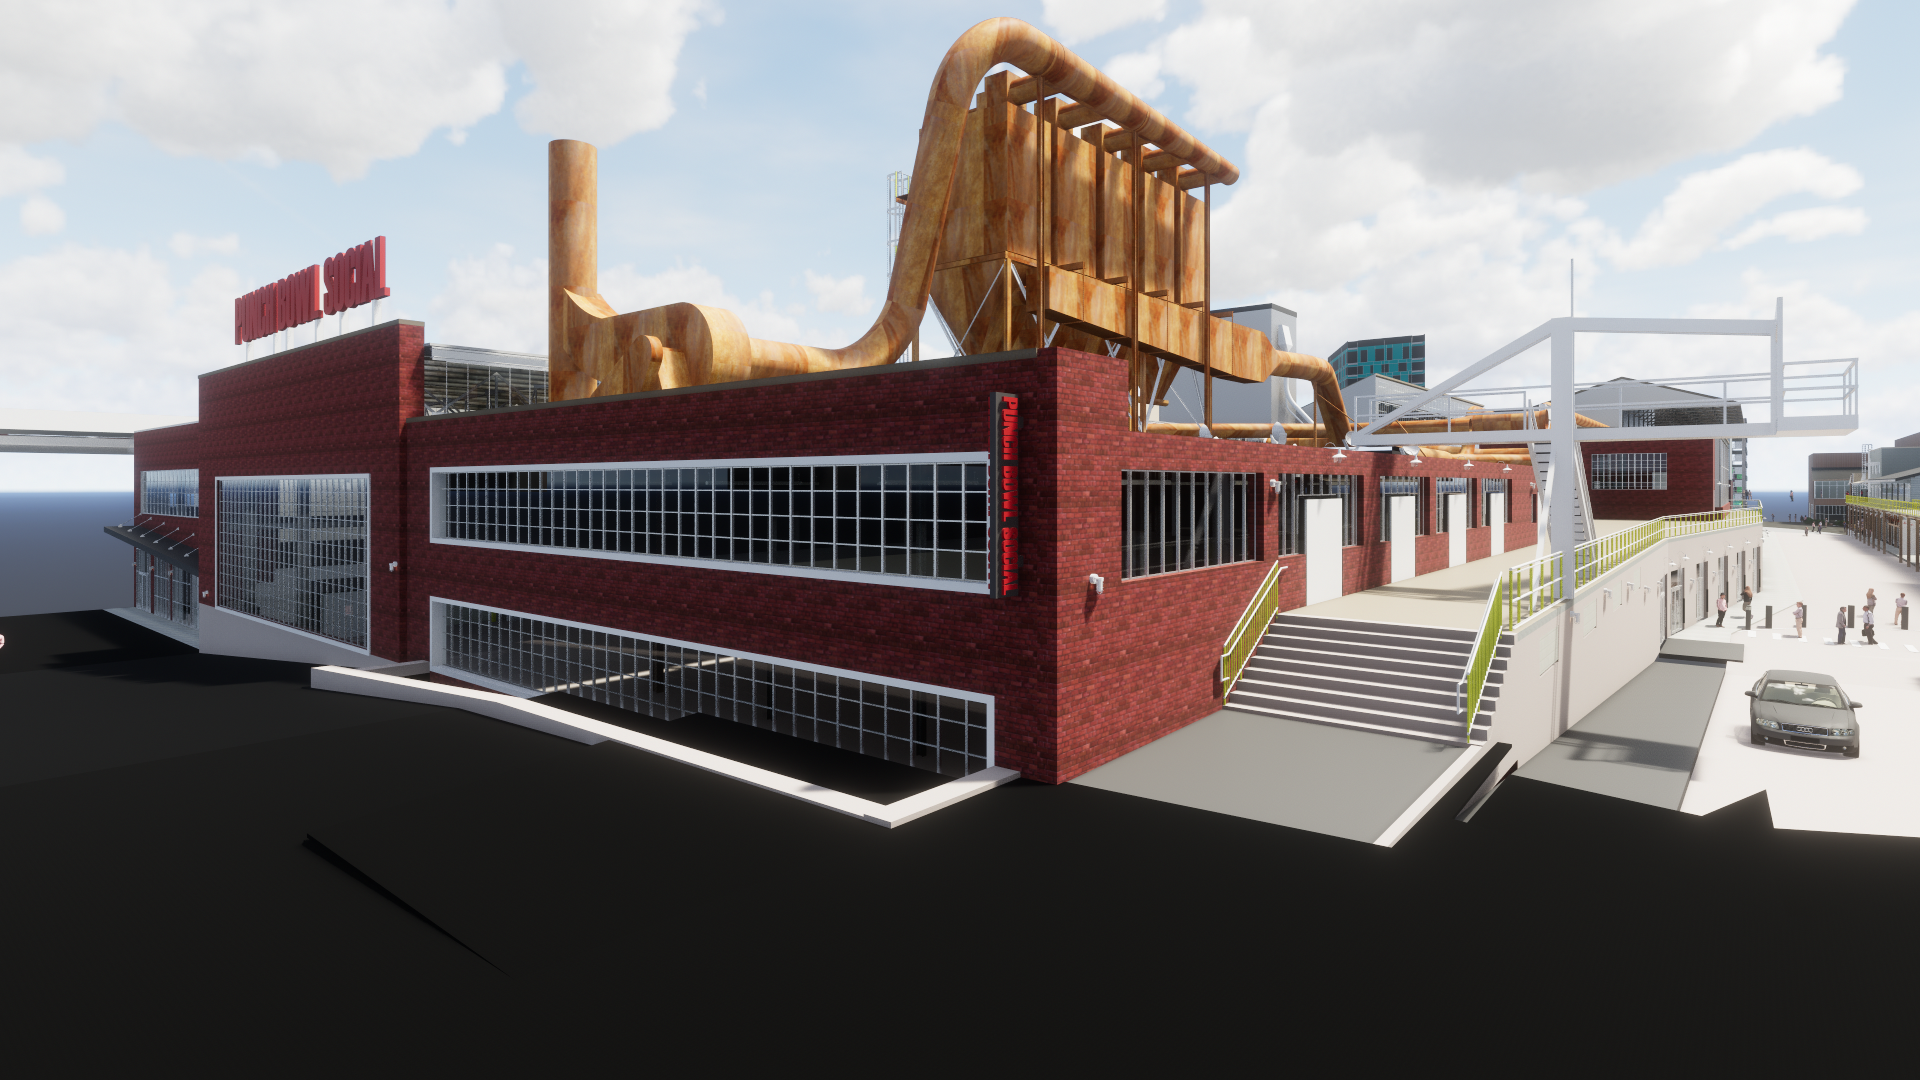 Alamo Drafthouse, Punch Bowl Social, and Fassler Hall to anchor City Foundry